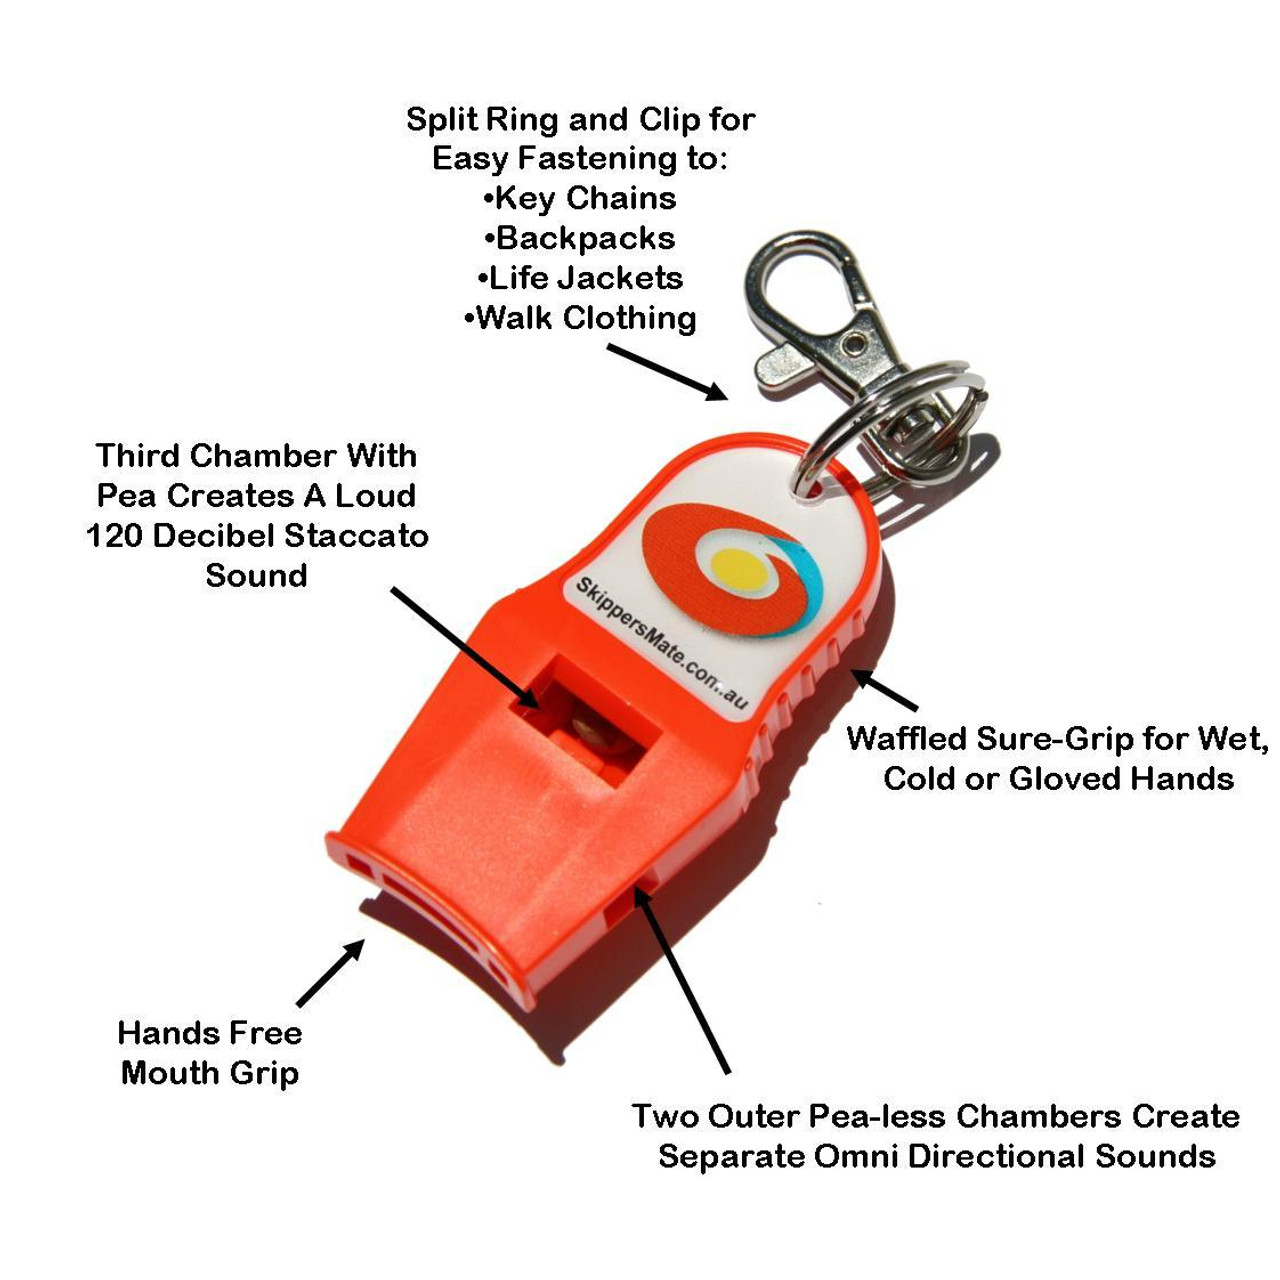 If you can be Heard, you can be Rescued. Sound is the #1 factor in deterring crime and finding lost victims. When you are injured, cold, lost and tired, shouting can leave you hoarse and exhausted in a matter of minutes. However, if you can breathe, you can easily blow this Safety Whistle and be found by Rescue Personnel.